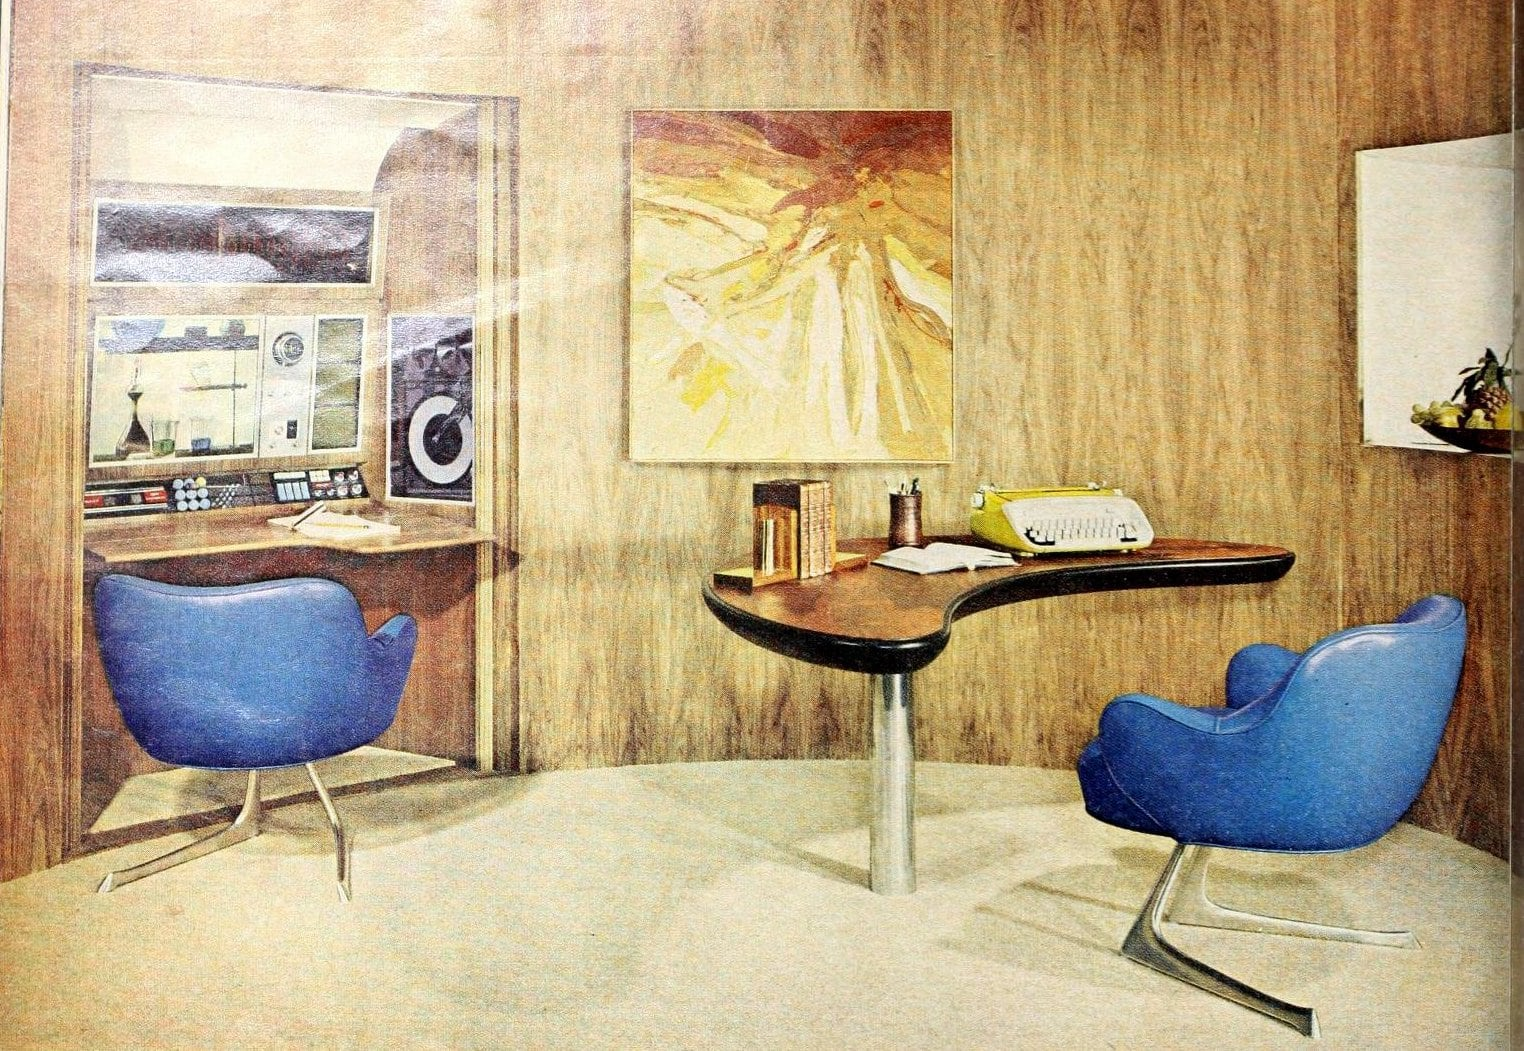 Blue pleather mid-century modern chairs in a mod vintage room with fancy electronics (1963)